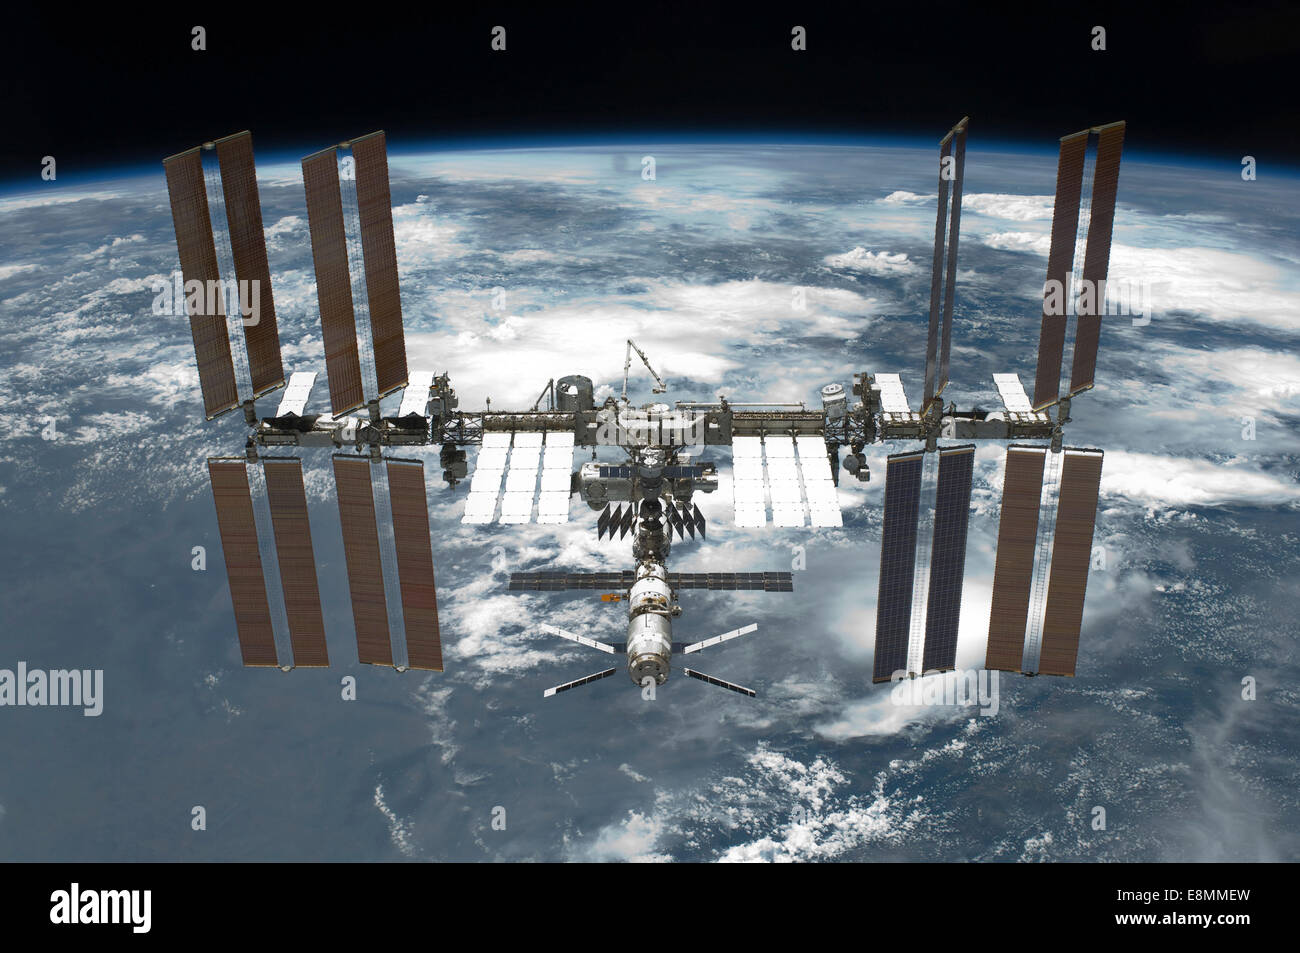 May 29, 2011 - The International Space Station backdropped by a blue and white Earth. - Stock Image